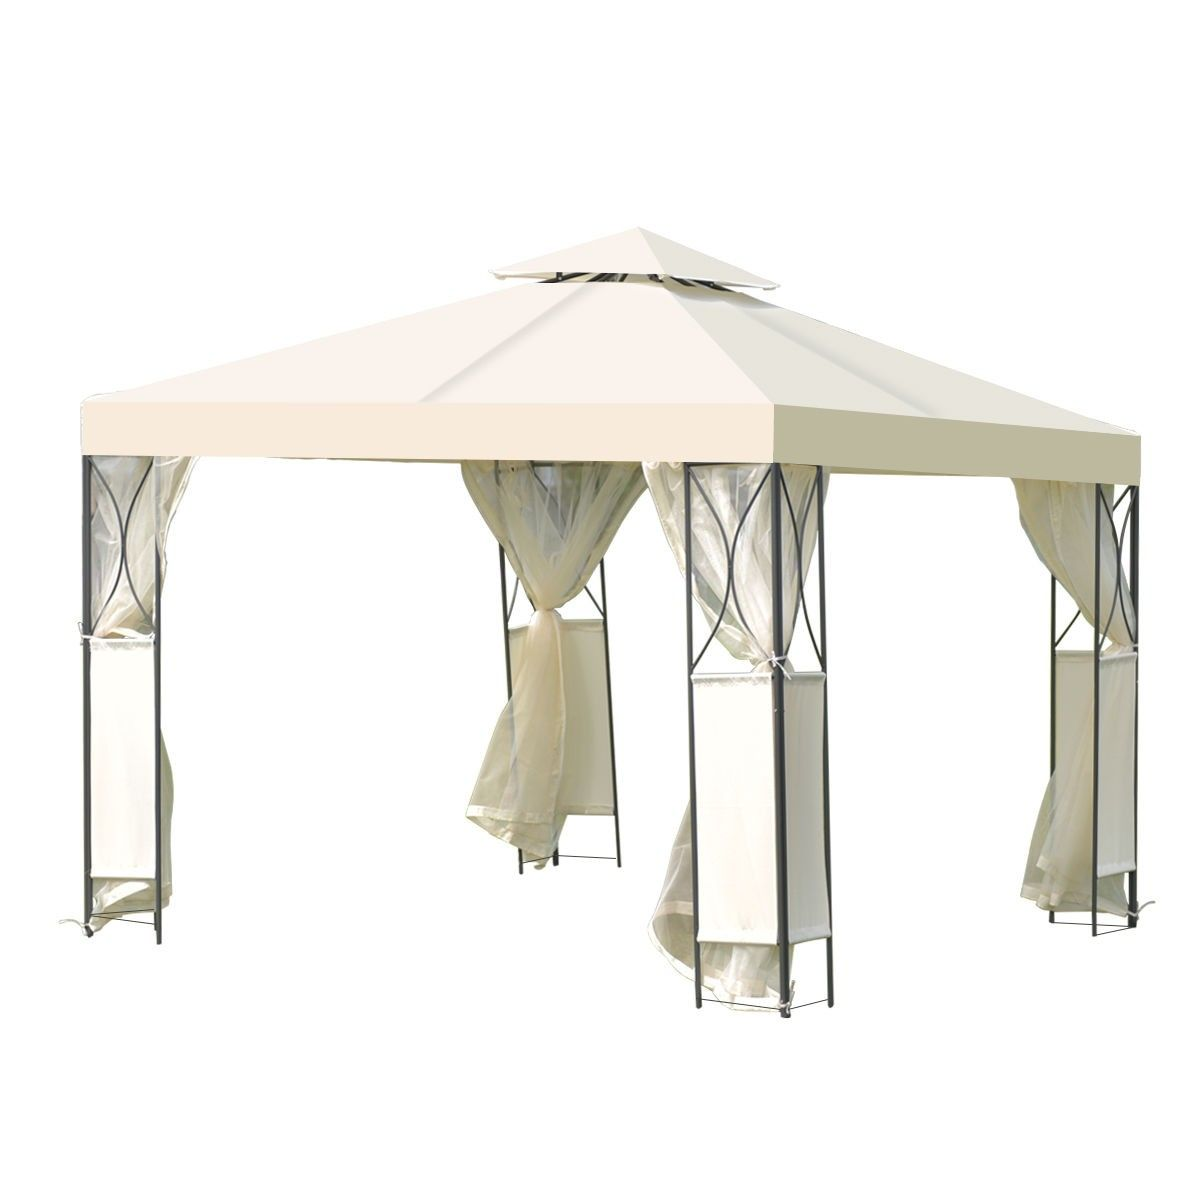 2 Tier 10 X 10 Patio Steel Gazebo Canopy Shelter Gazebo Canopy Steel Gazebo Gazebo